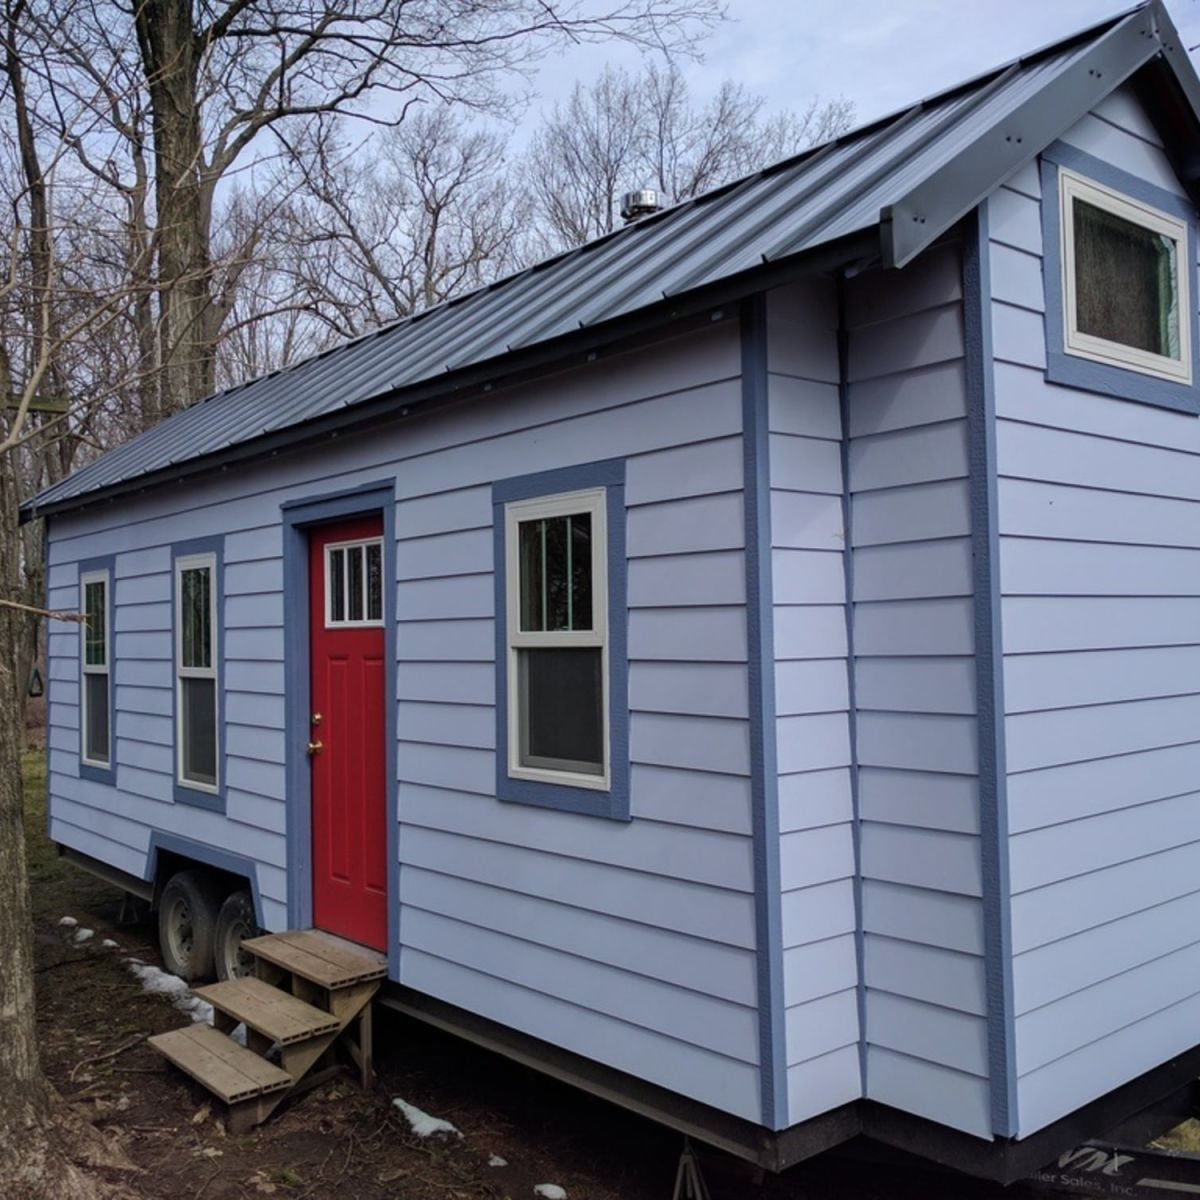 Working Class Tiny House - Tiny House for Sale in Monroe, Michigan - Tiny  House Listings